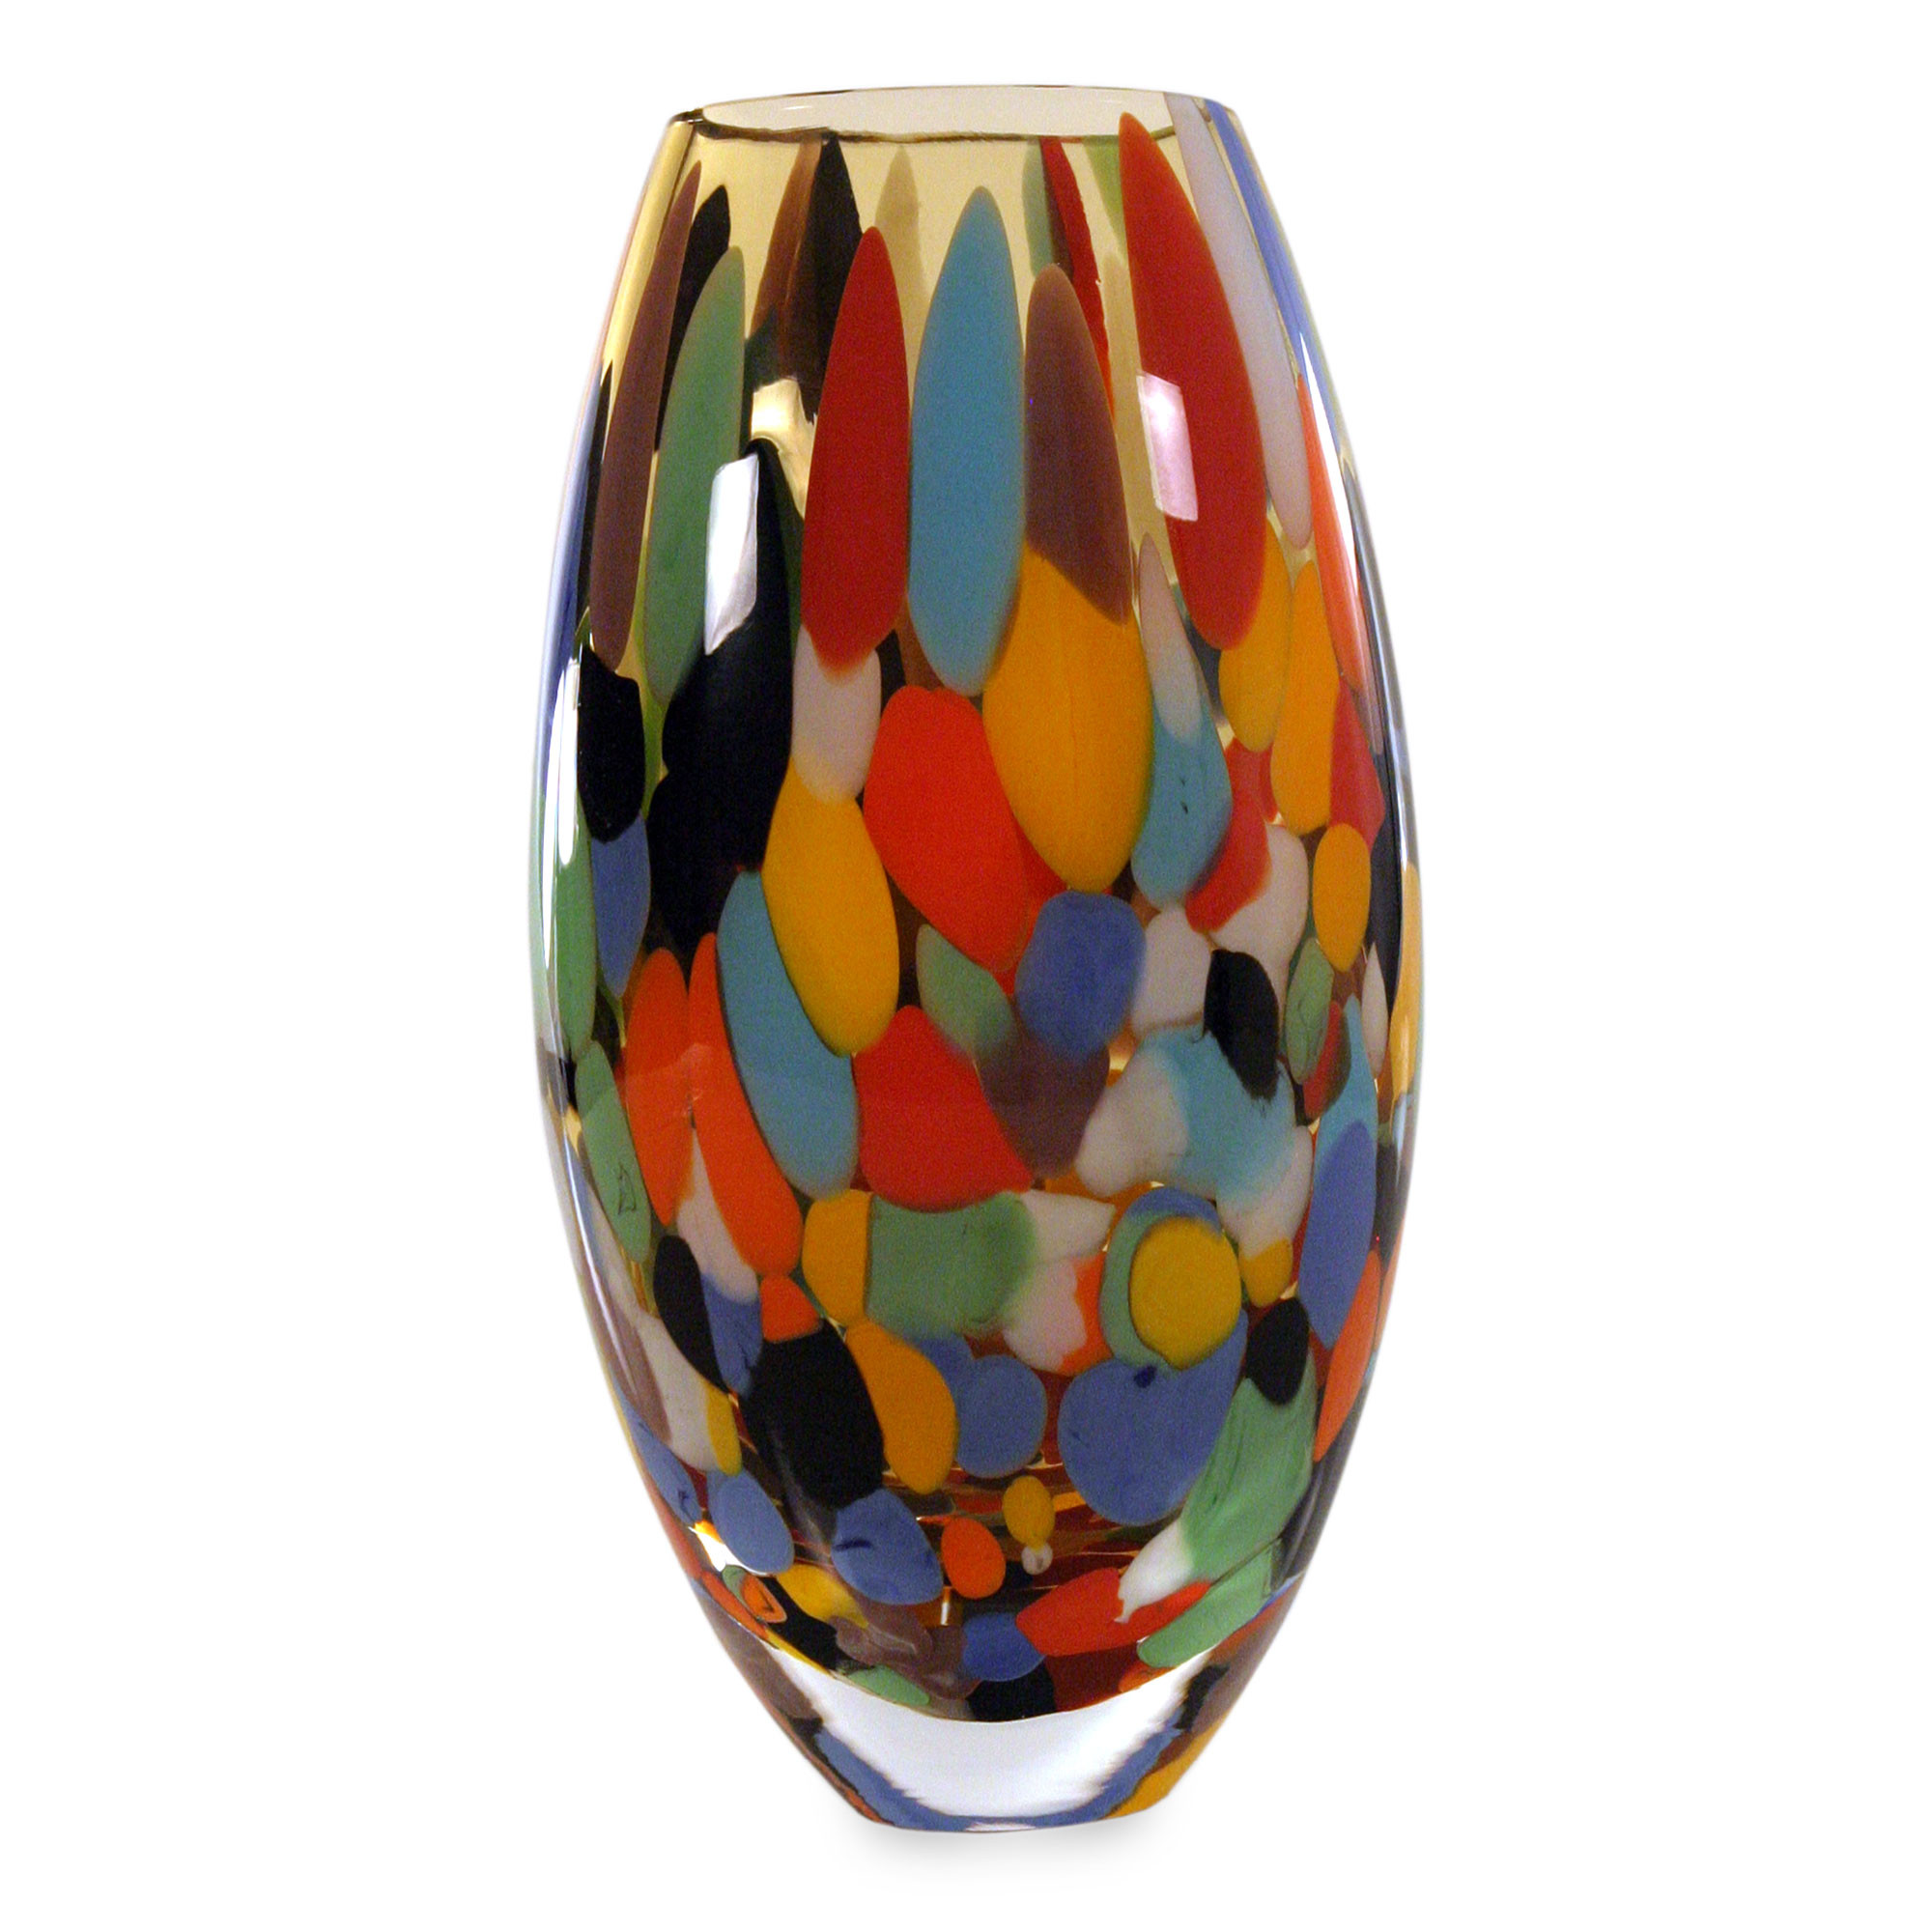 27 attractive Gold Carnival Glass Vase